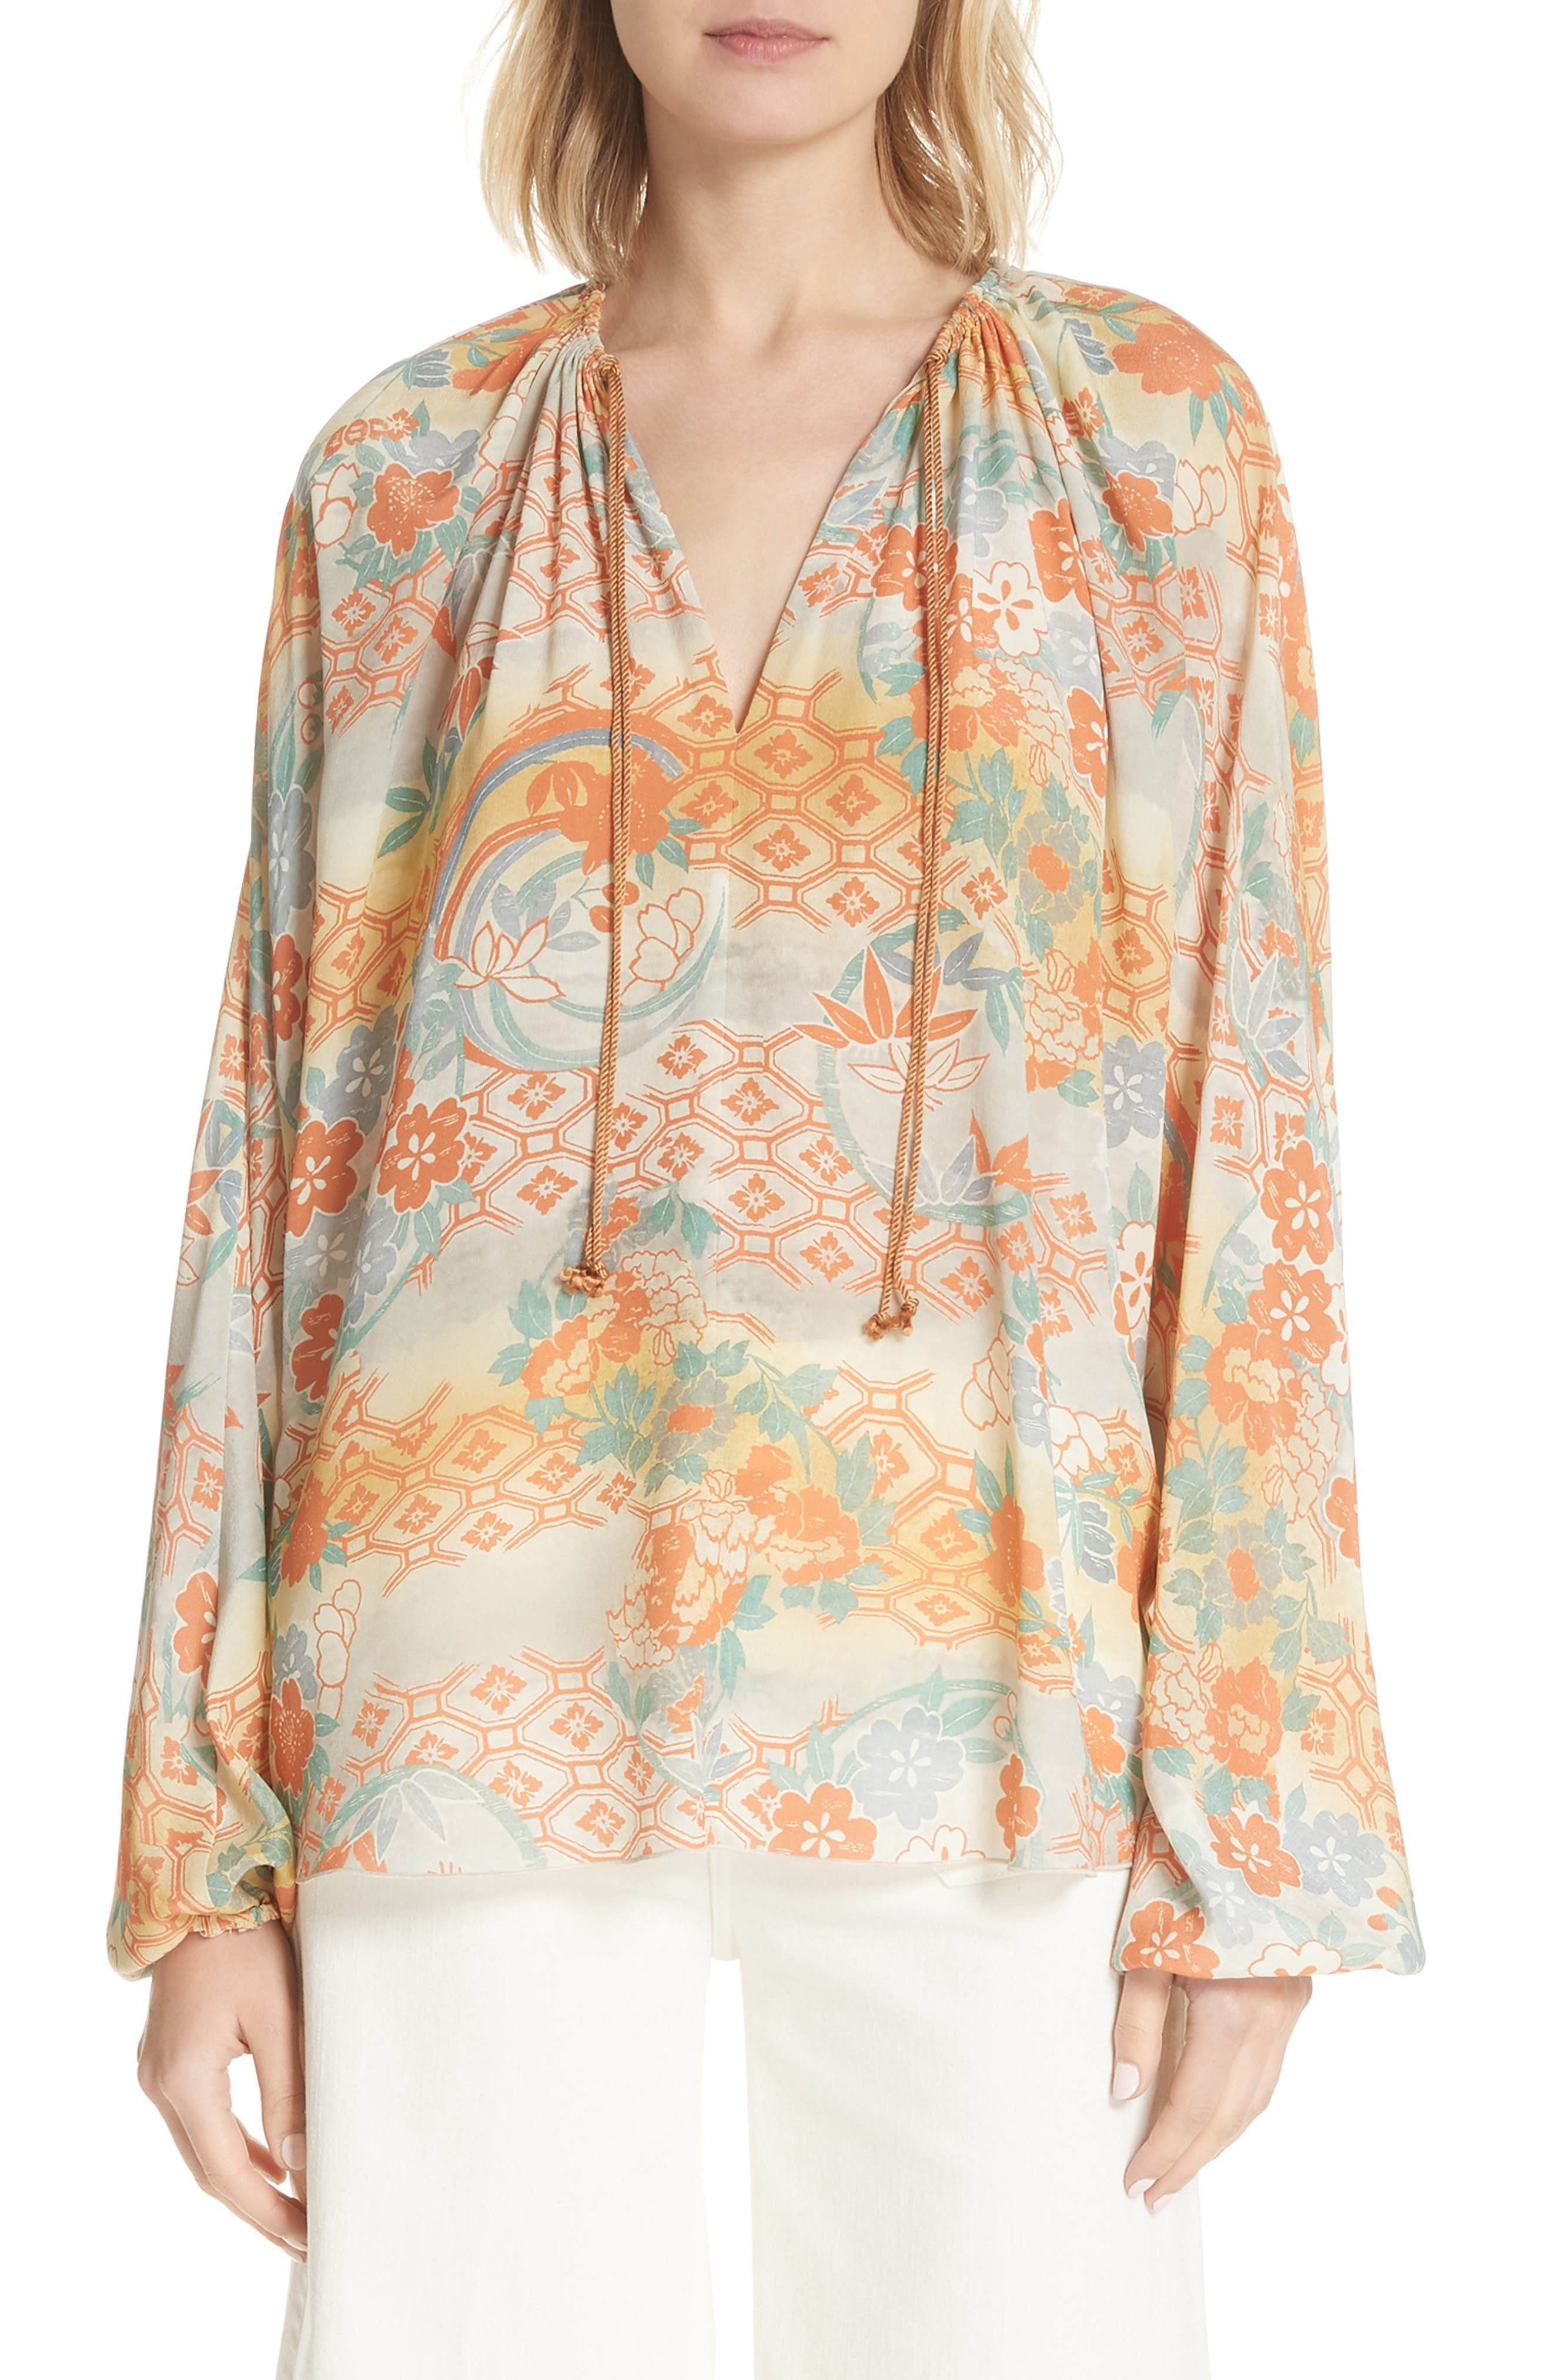 Elizabeth and James Chance Floral Print Silk Top